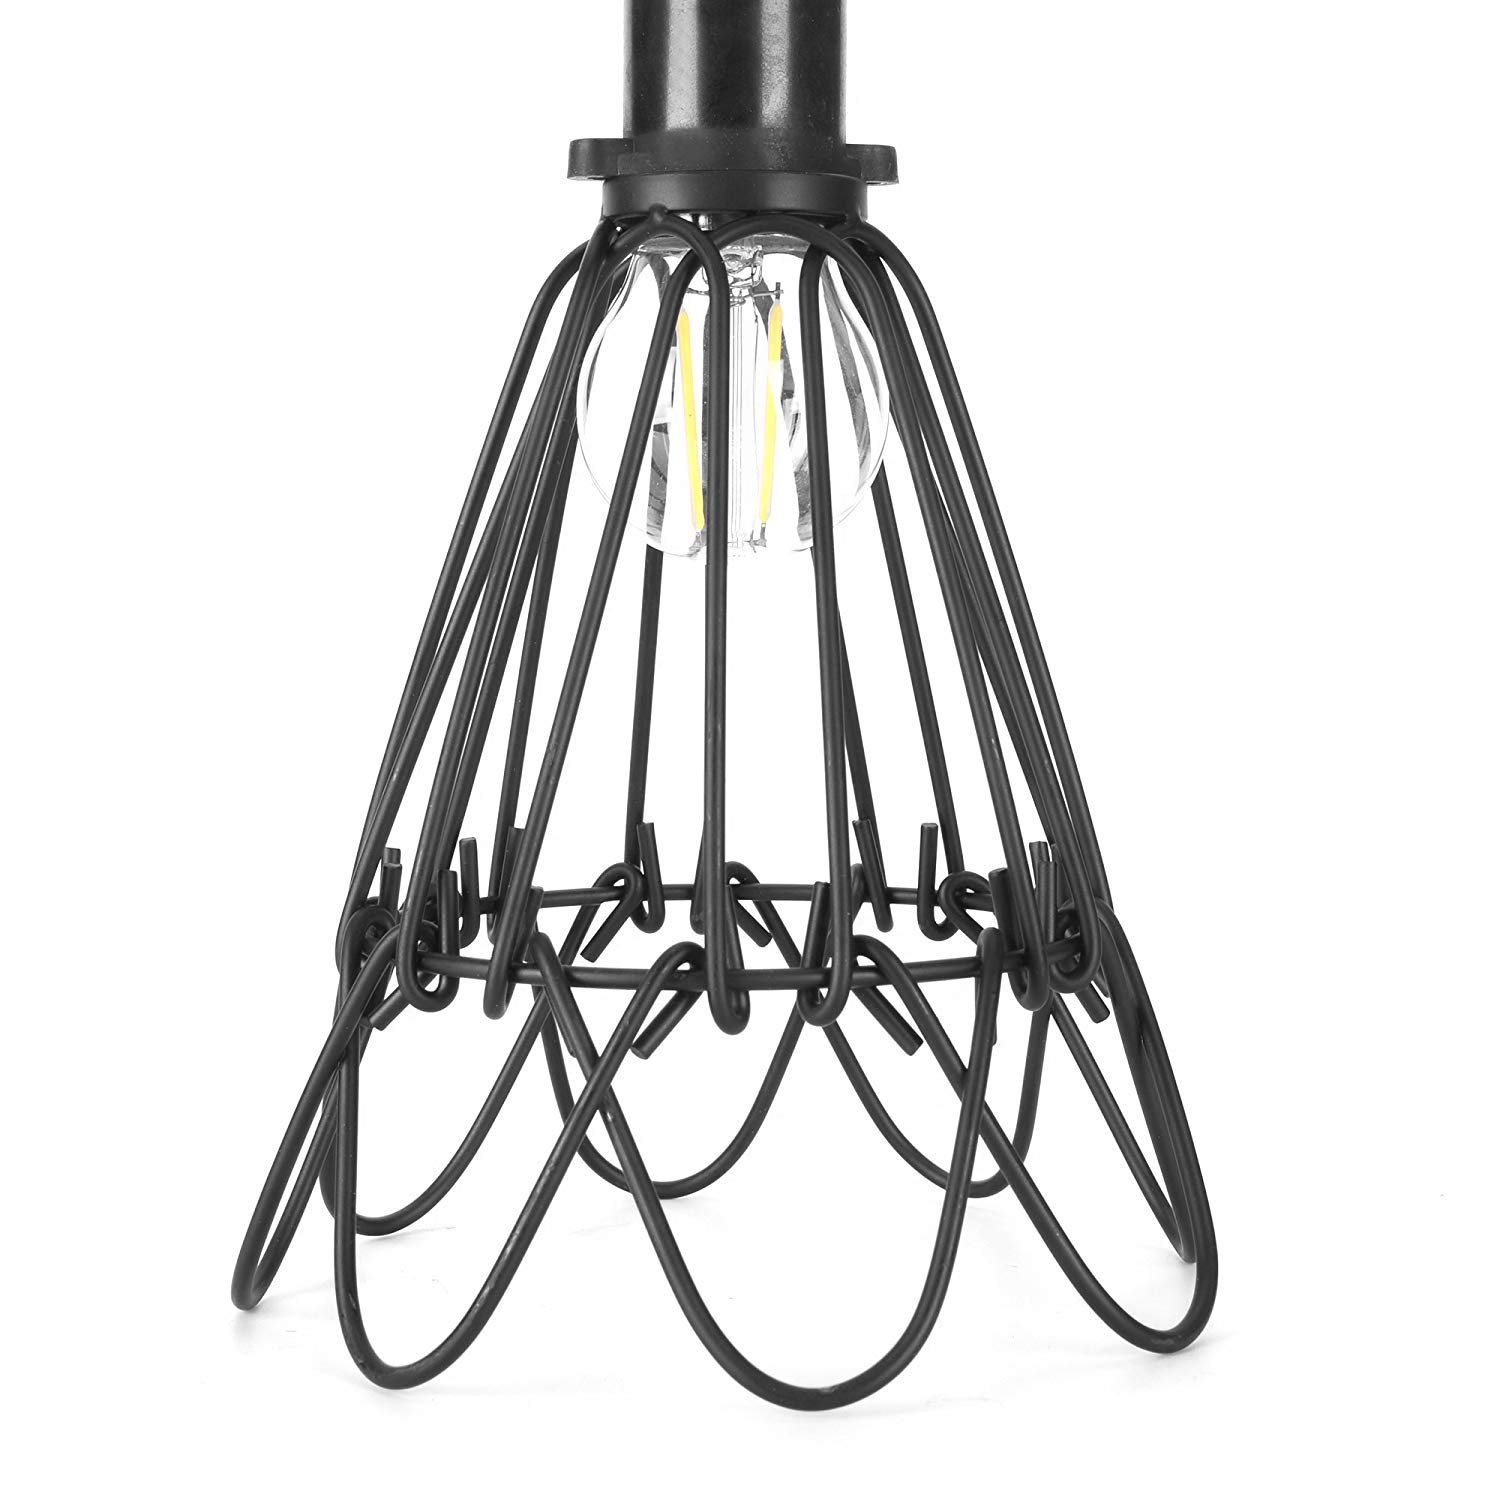 cheap bird cage light shade find bird cage light shade deals on Fluorescent Light Sockets get quotations industrial metal bird cage l guard string light shade open close flower ceiling hanging pendant island